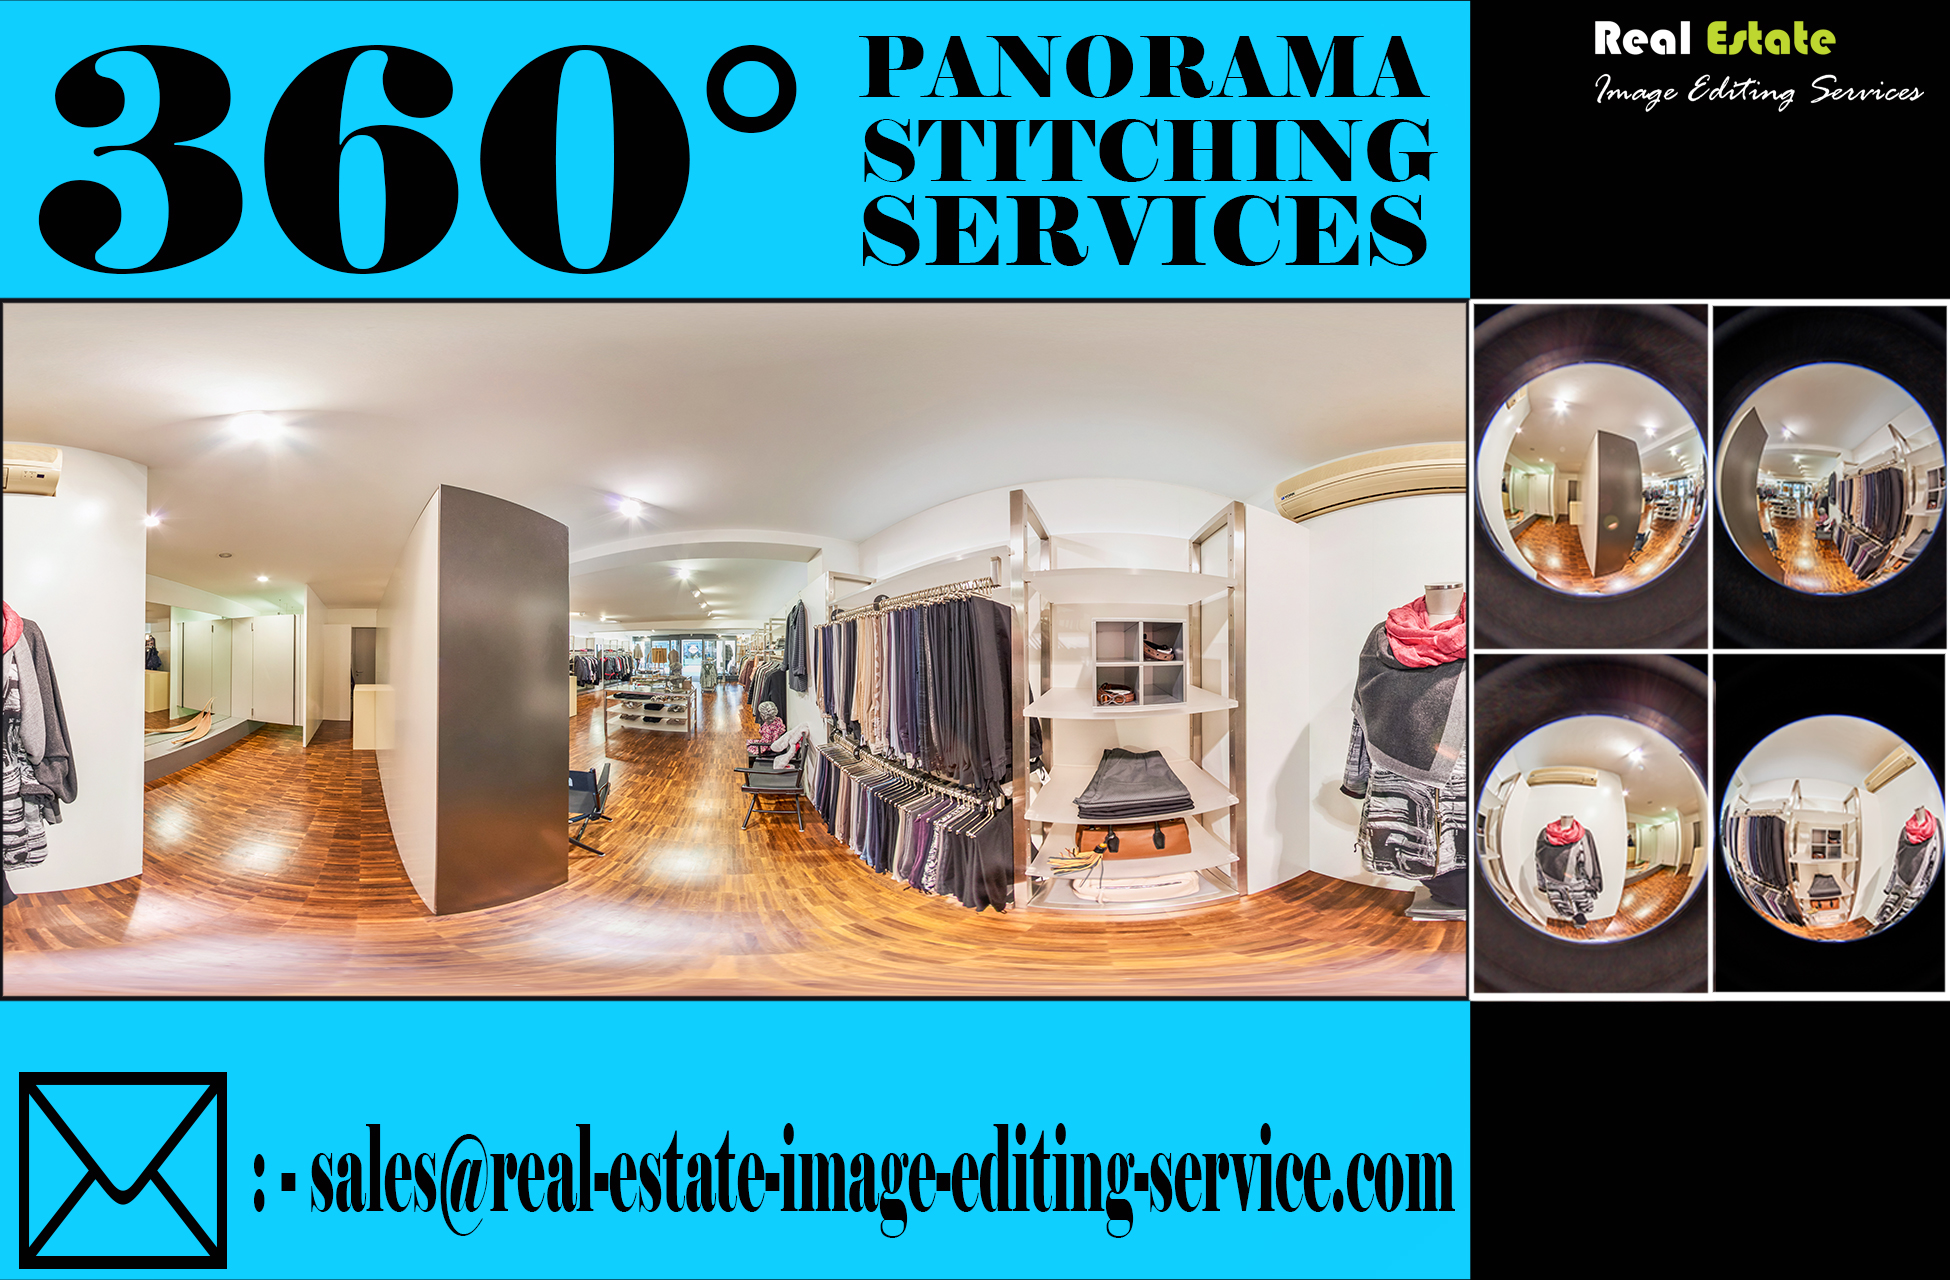 Panorama Enhancement for Real Estate Property